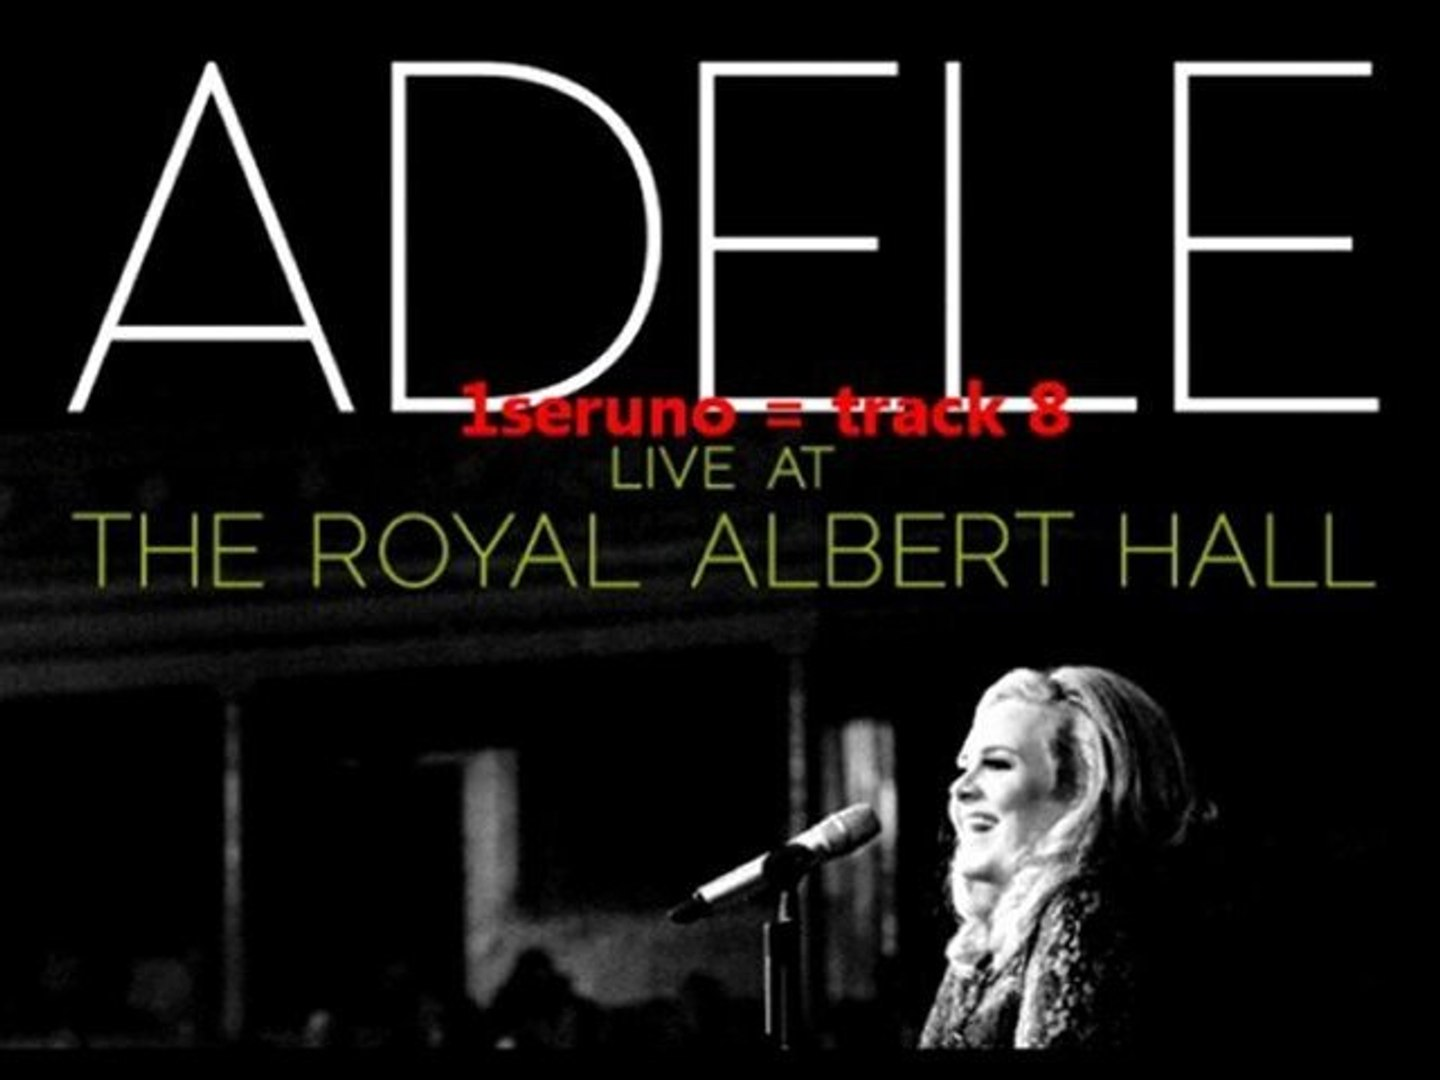 adele live at royal albert hall mp3 download